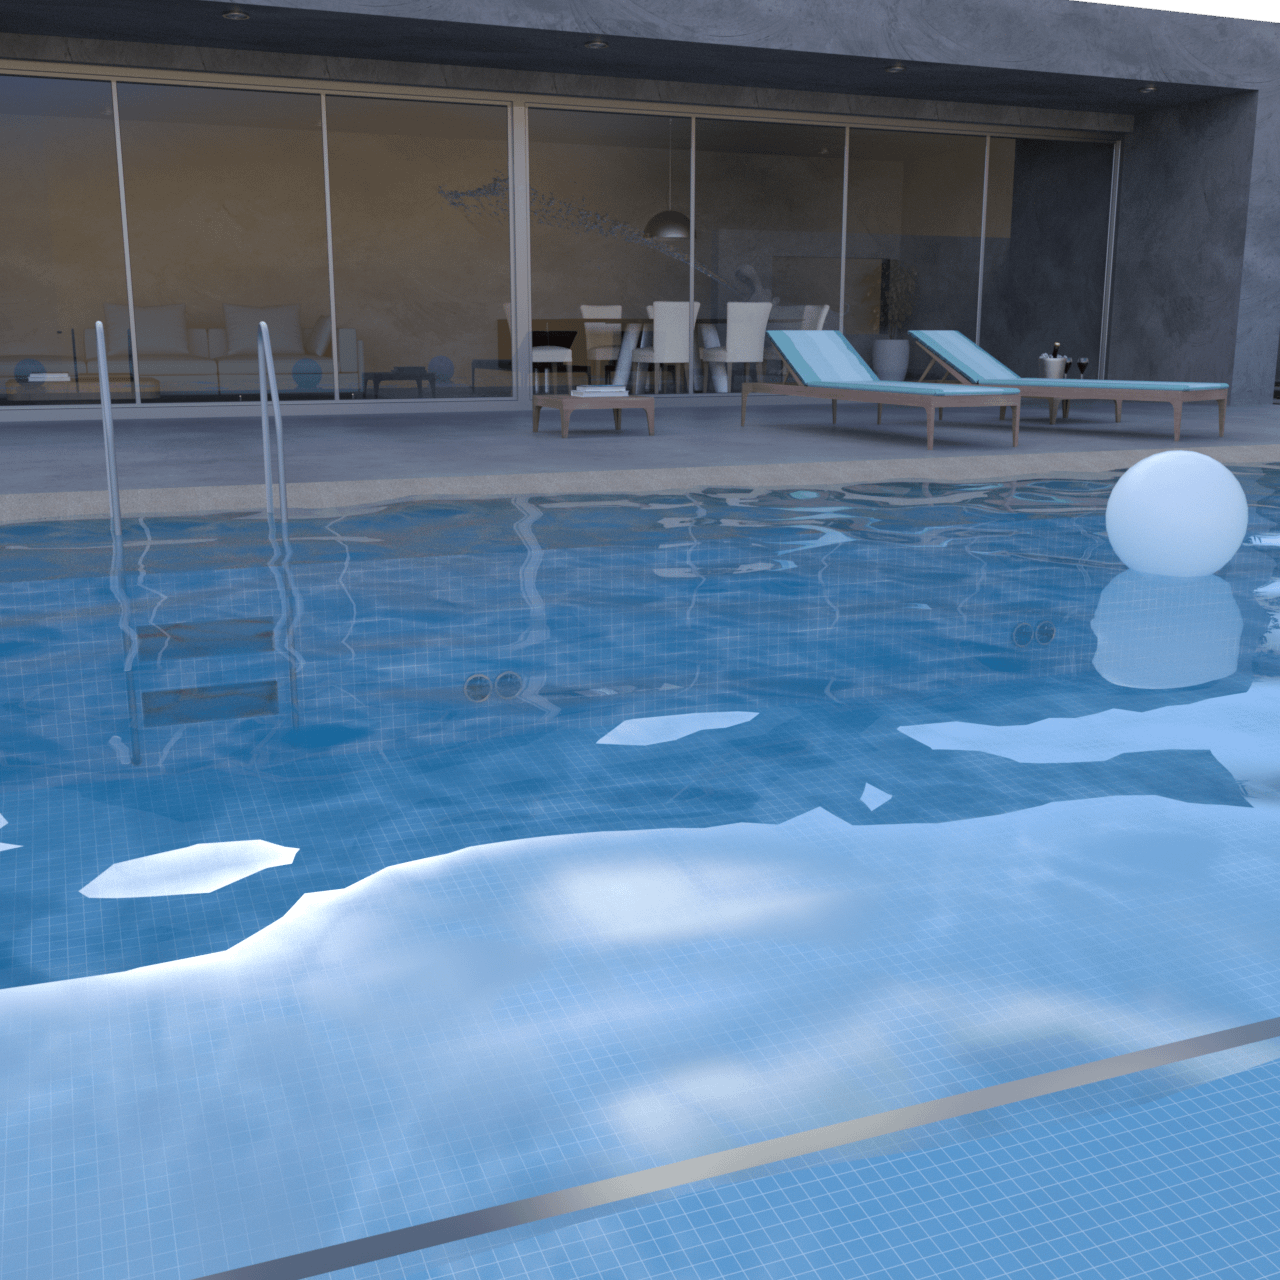 Swimming pool 3d model with a house with big windows in the background